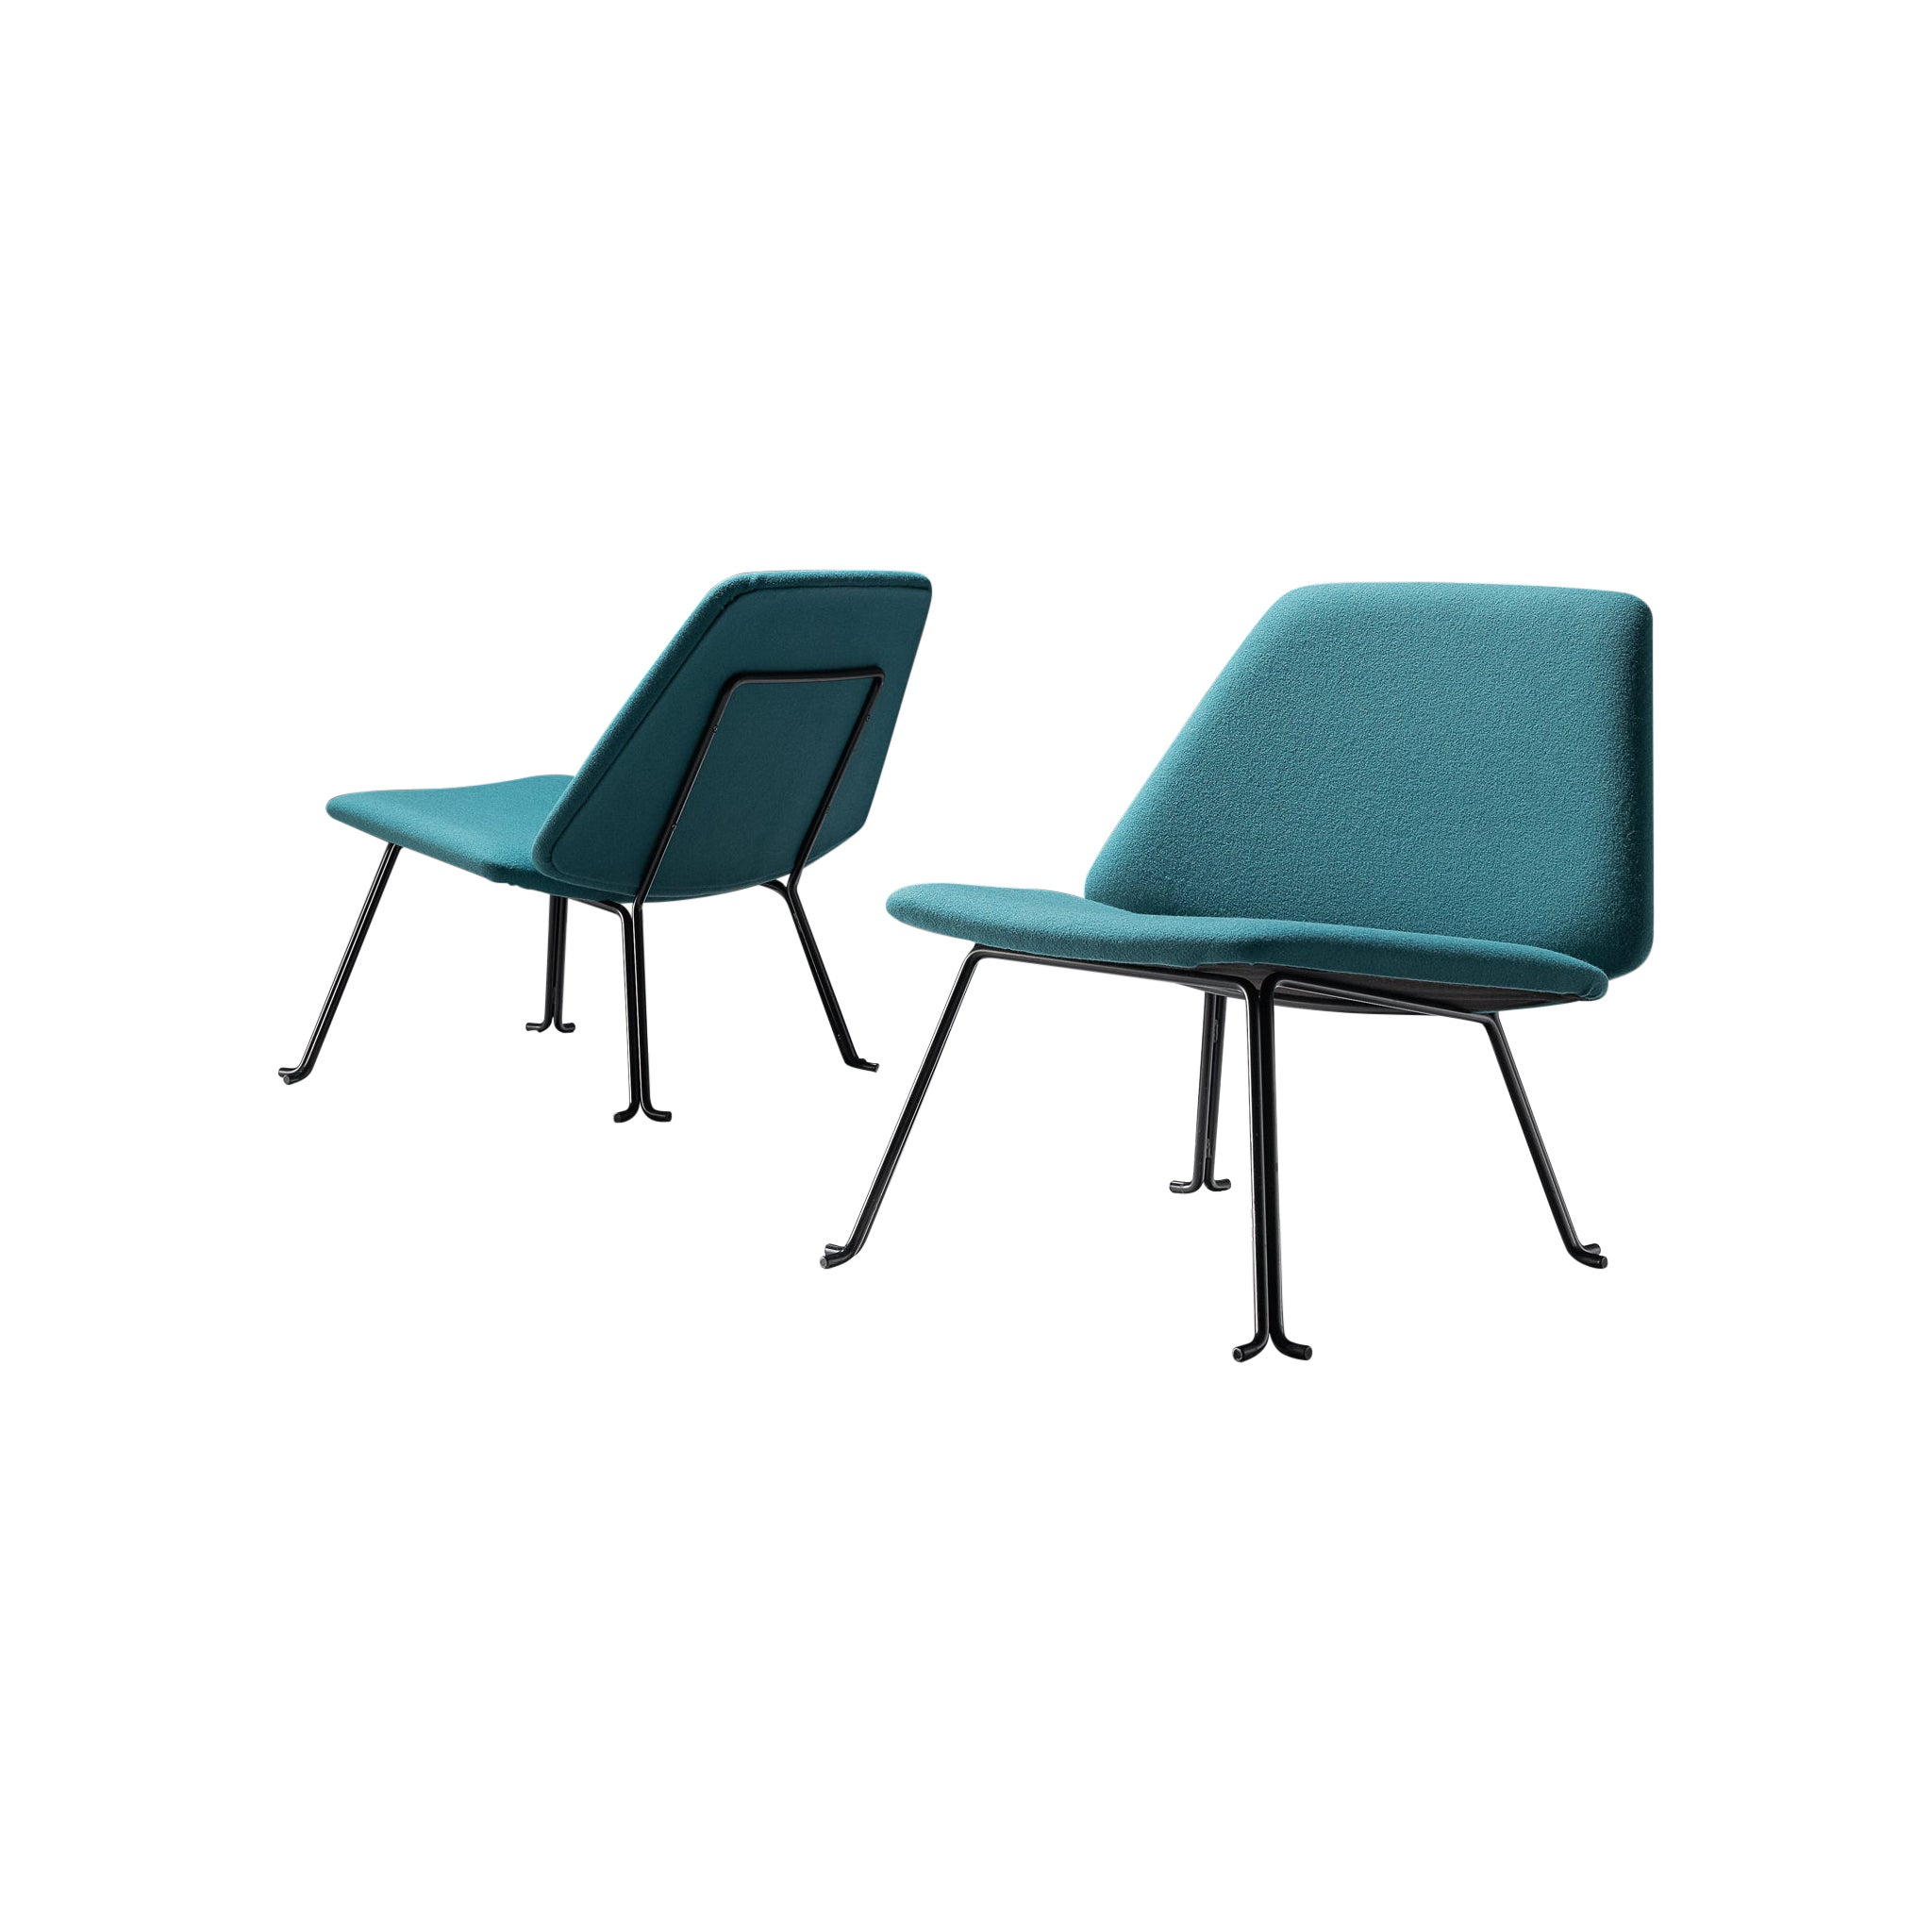 Pair of Italian Easy Chairs in Green Upholstery